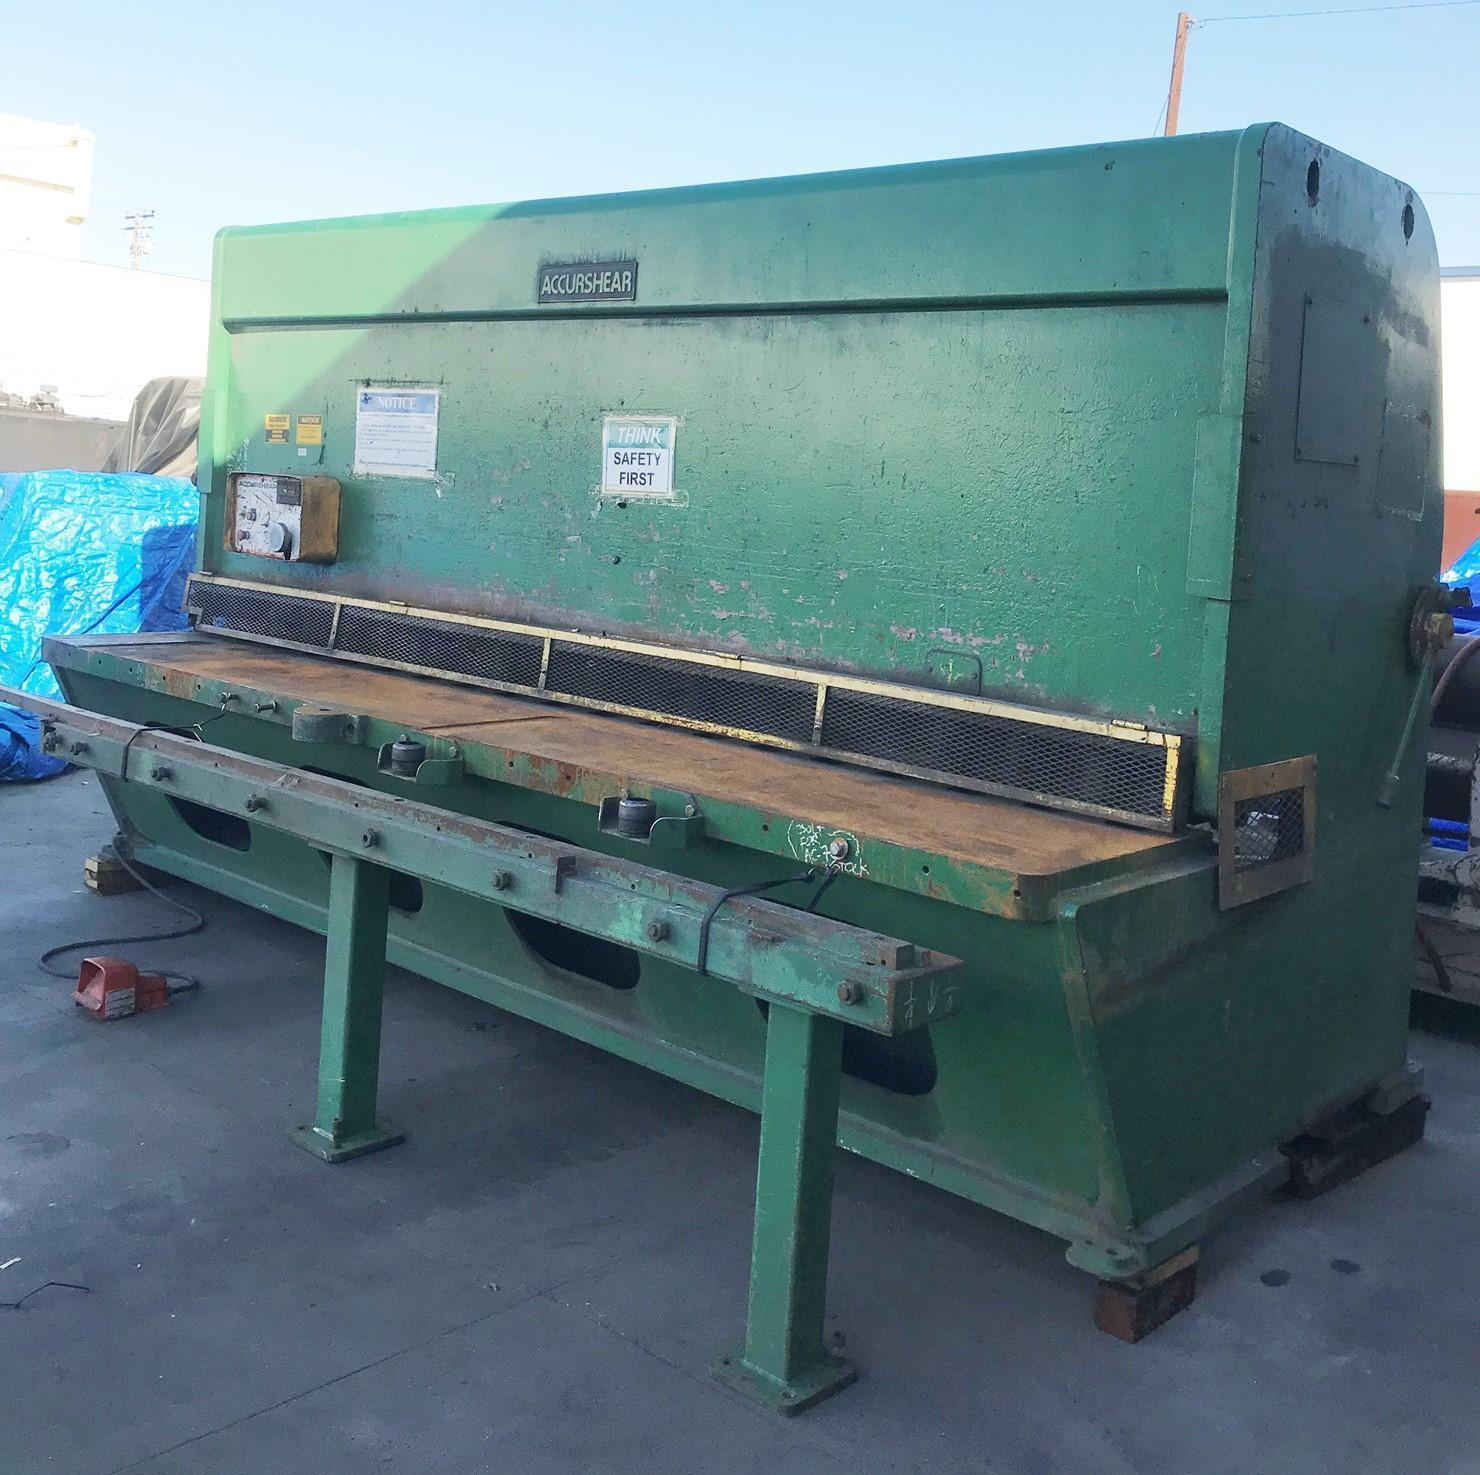 "12' X 3/8"" ACCURSHEAR MODEL #837512 HYDRAULIC POWER SHEAR: STOCK 11159"